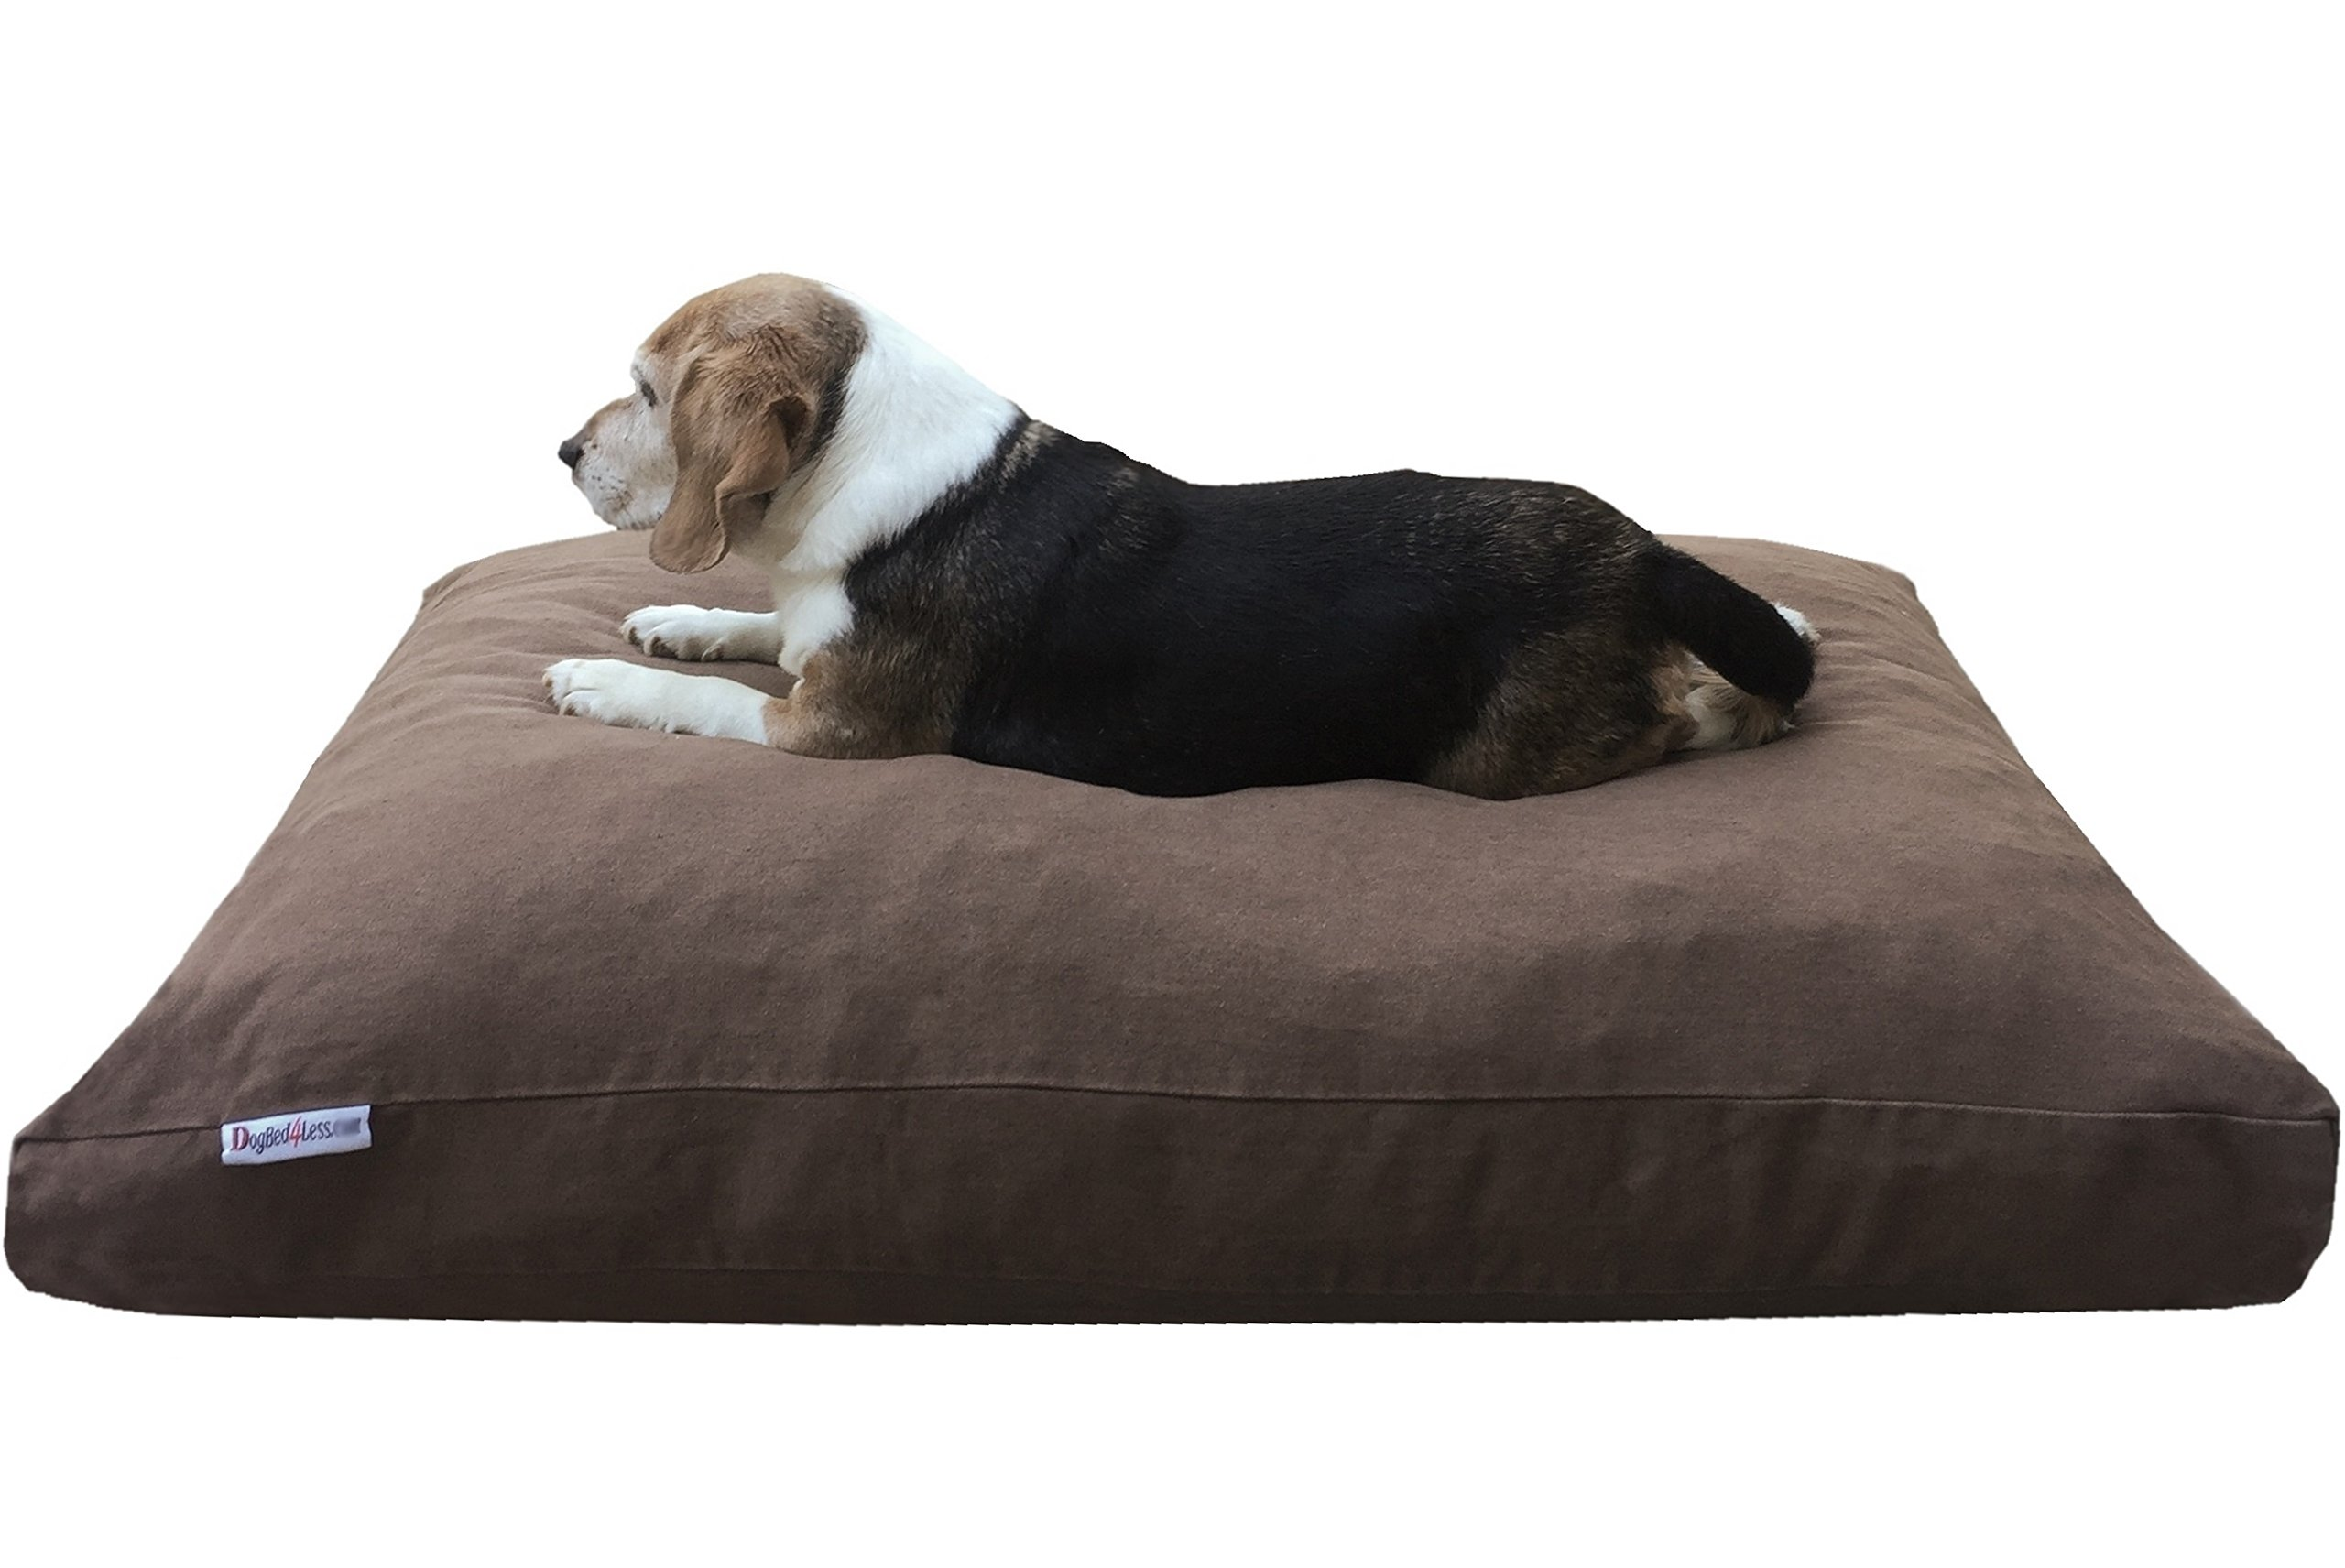 Dogbed4less Large Memory Foam Dog Bed Pillow with Orthopedic Comfort, Waterproof Liner and Durable Pet Bed Denim Cover 41''X27'', Brown